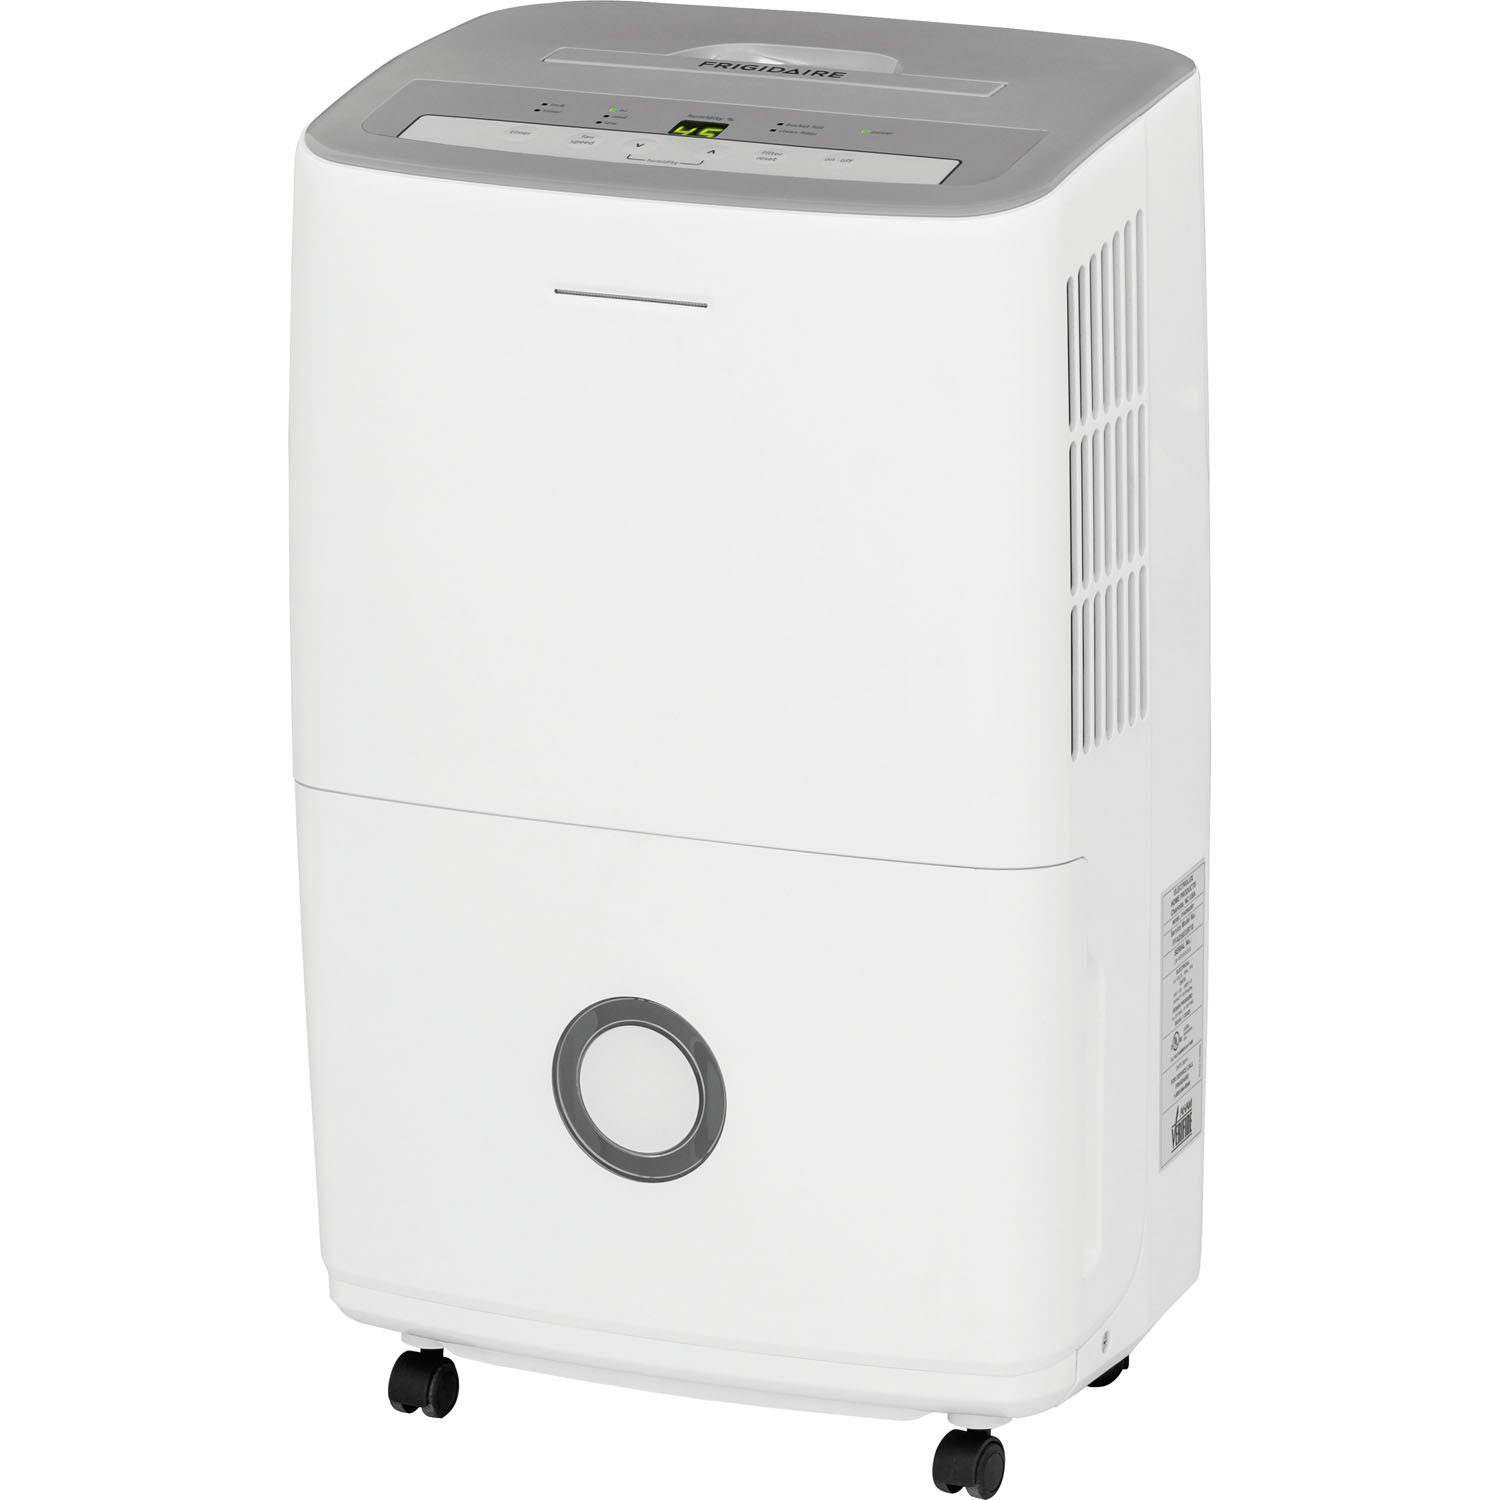 Top 10 Best Rated Dehumidifiers For Basement